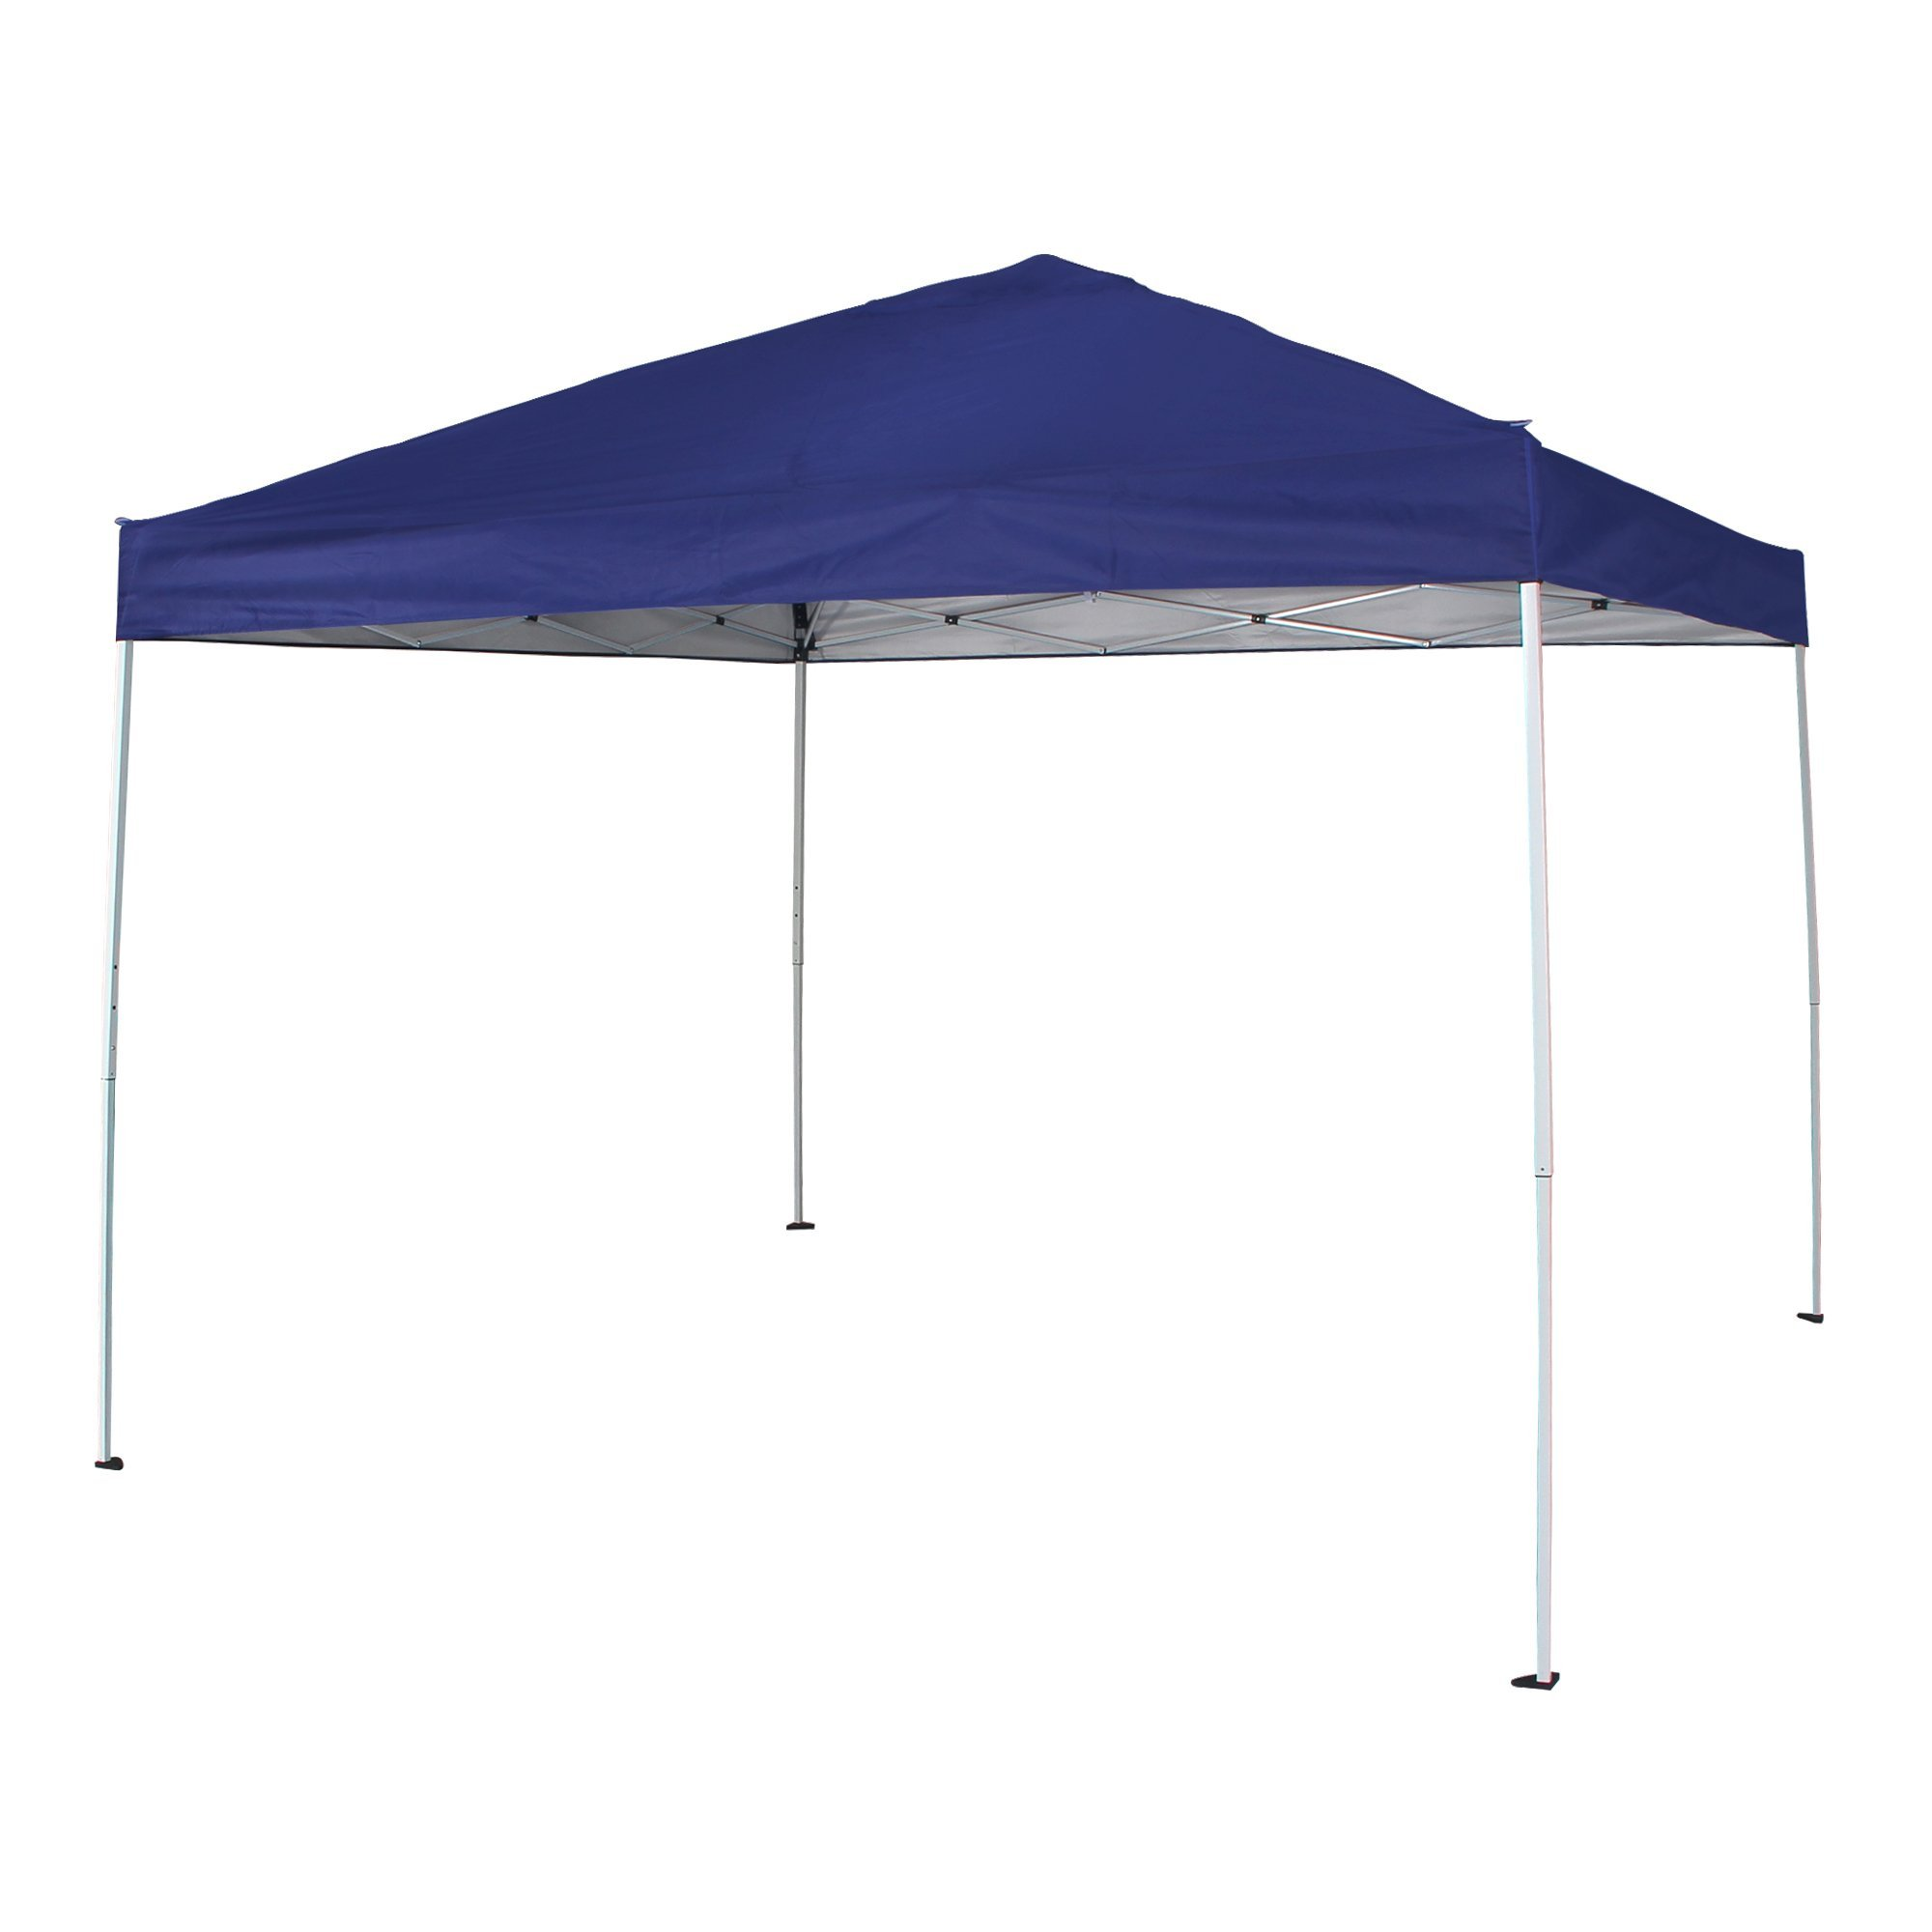 FurniTure Canopy Tent 10' x 10' Pop Up Canopy Tent Commercial Party Canopy Instant Canopy 10x10 Outdoor Canopy Patio Canopy Easy Set Up with Carry Bag, Blue